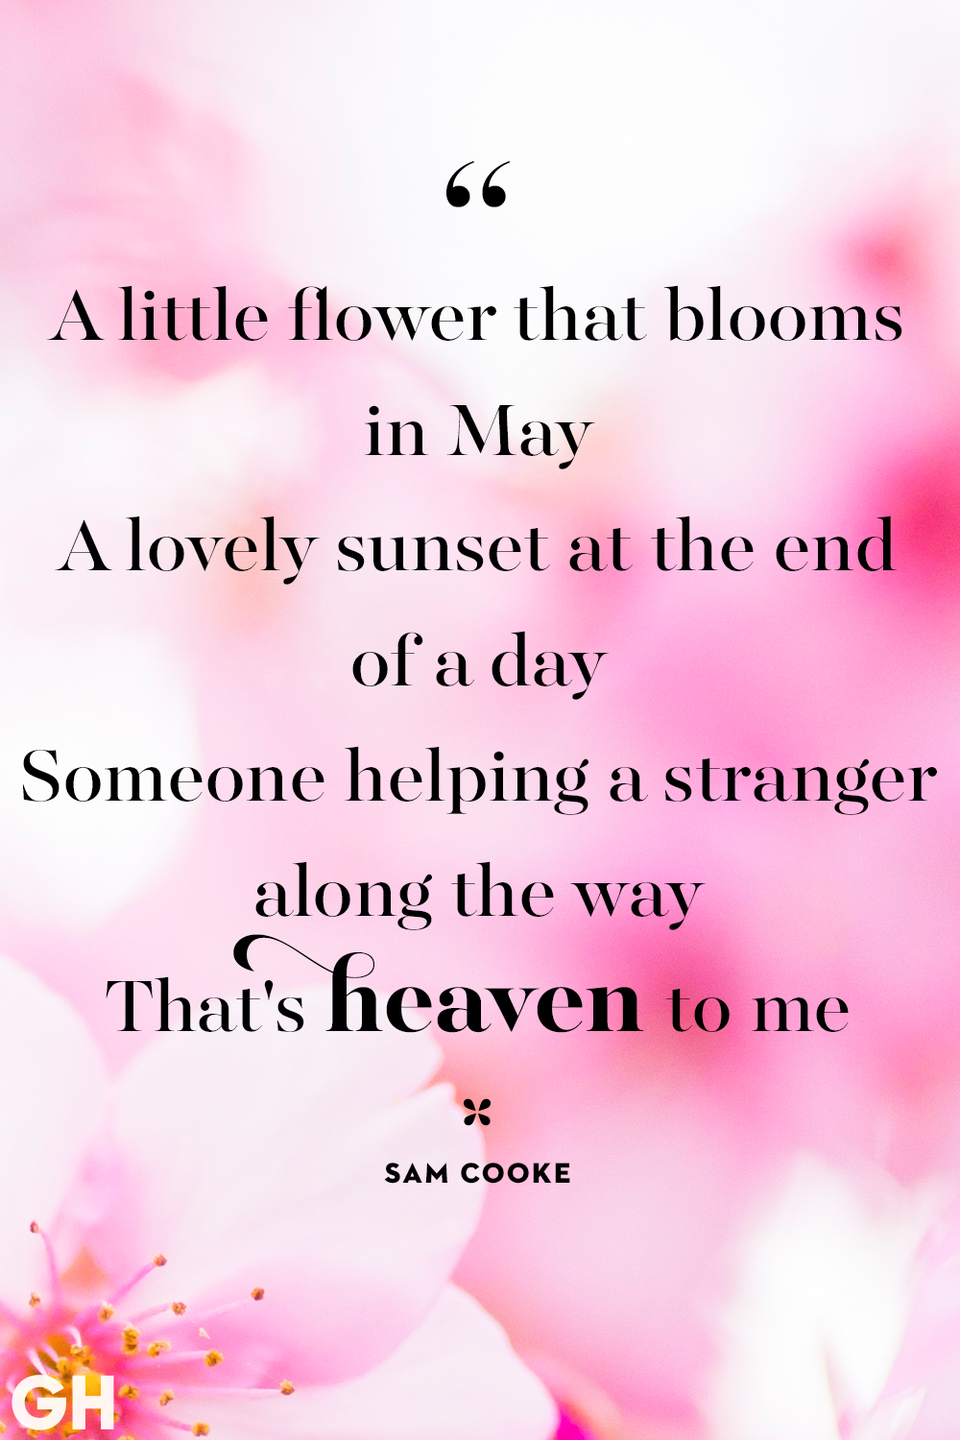 <p>A little flower that blooms in May. A lovely sunset at the end of a day. Someone helping a stranger along the way. That's heaven to me.</p>